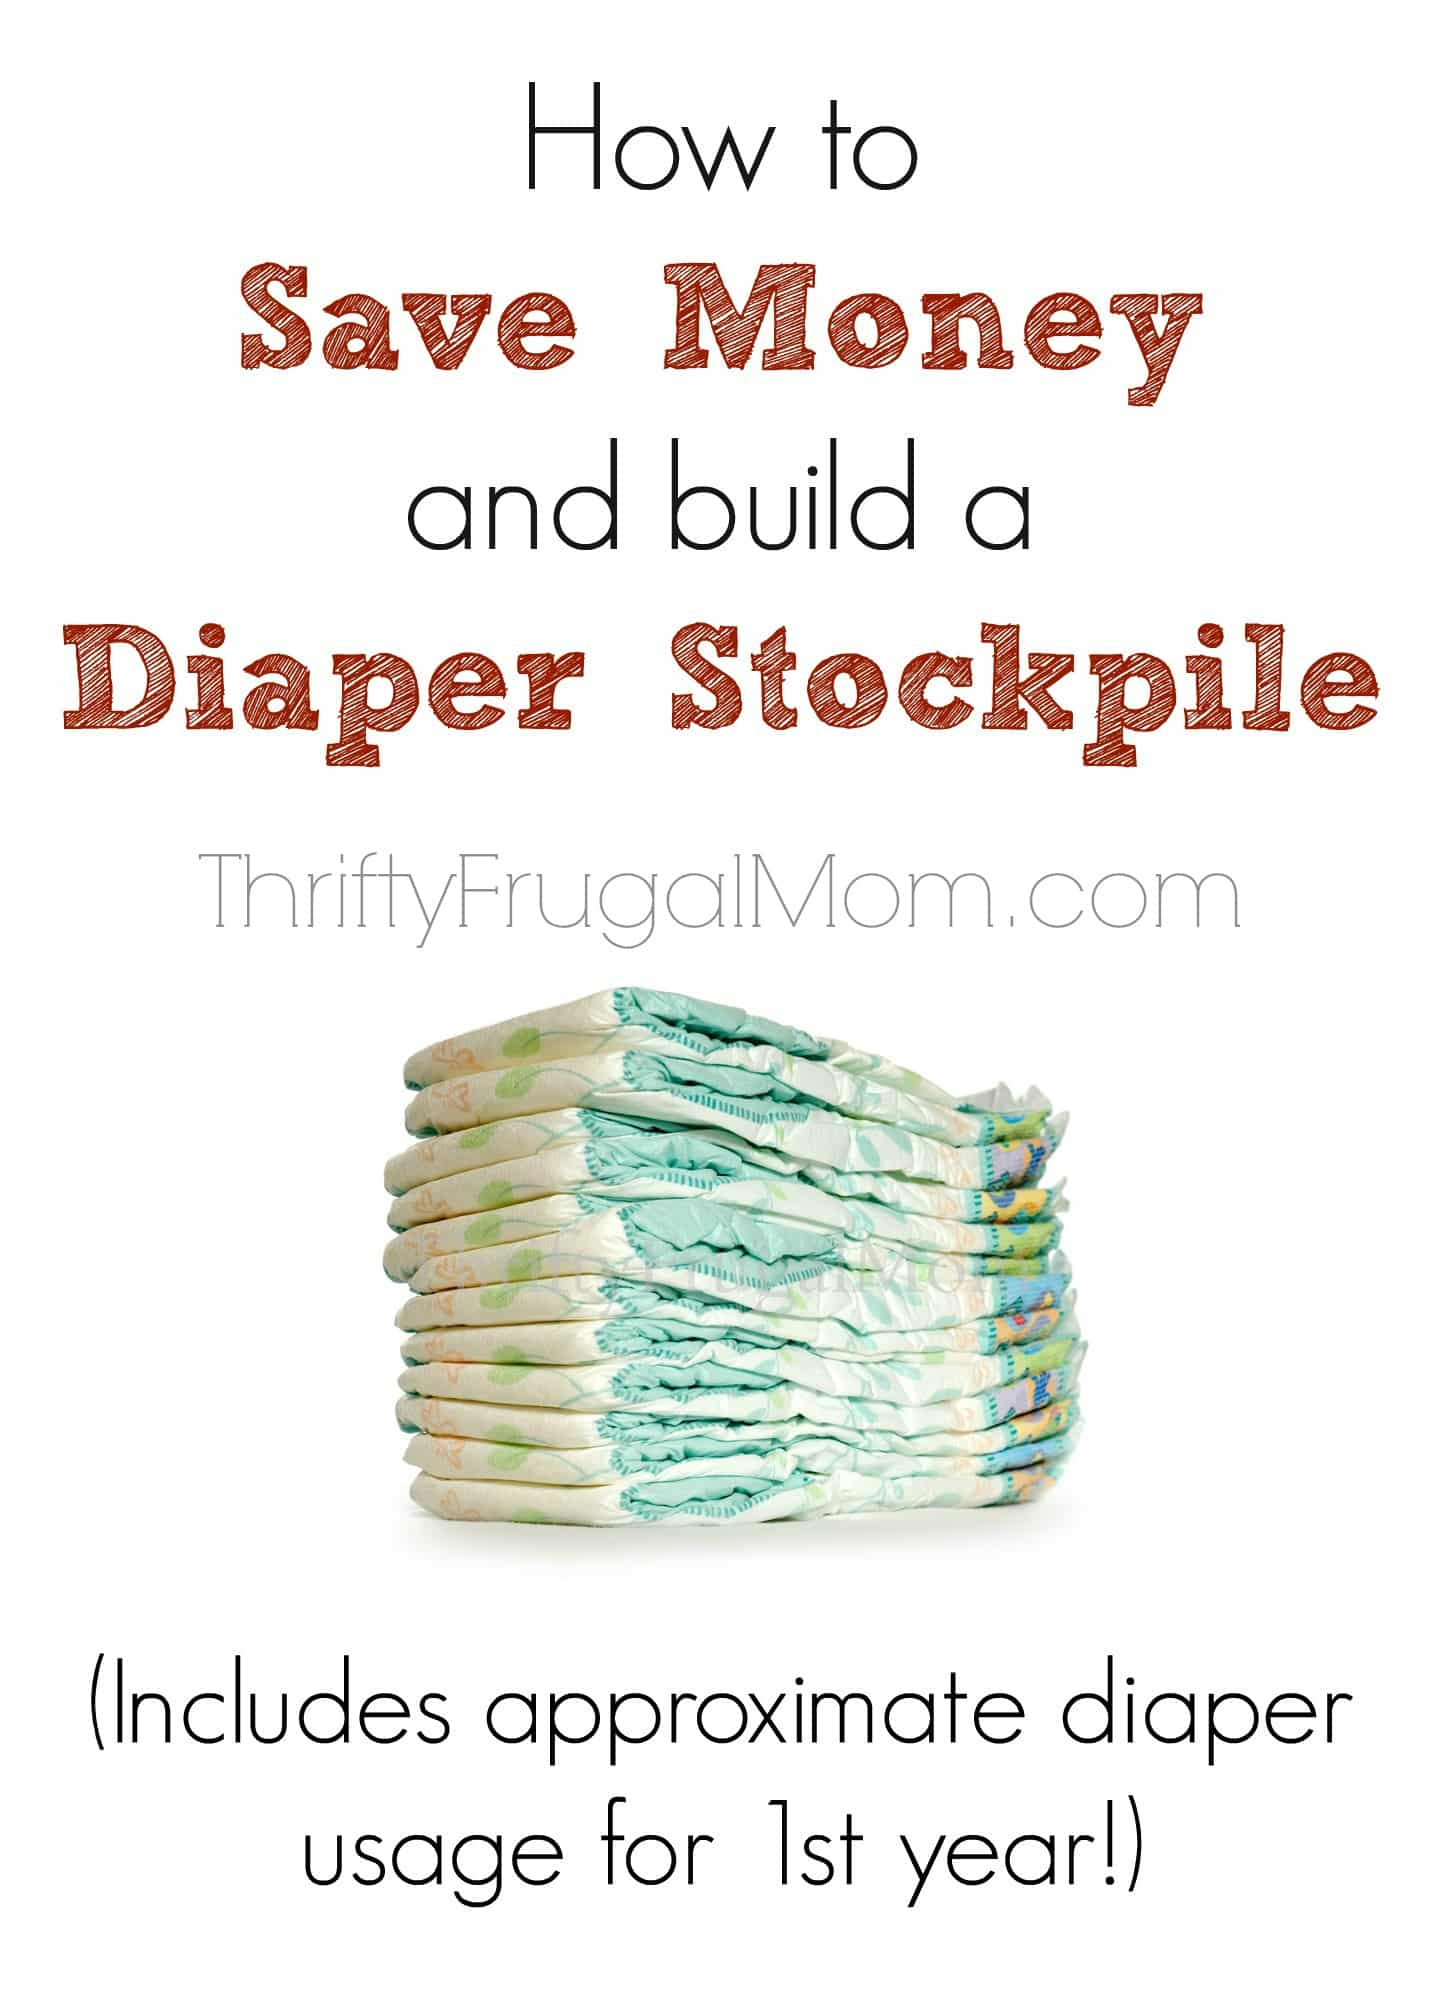 How to Save Money and Build a Diaper Stockpile- includes a diaper usage chart for baby's first year plus other tips! (Saves us at least 50%!)